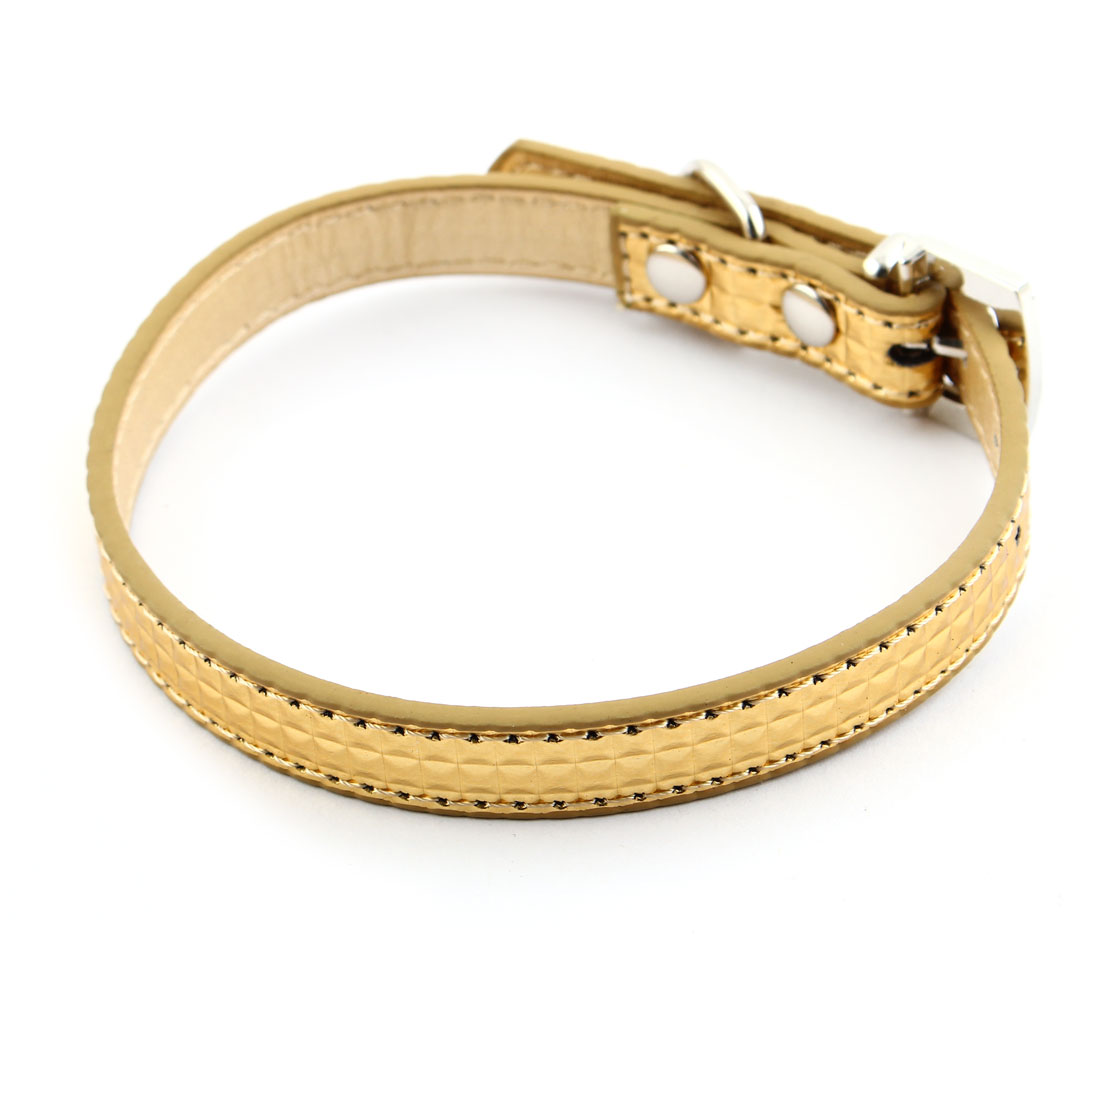 Pet Dog Puppy Cat Faux Leather Crown Pendant Adjustable Traction Strap Buckle Collar Belt Gold Tone XS